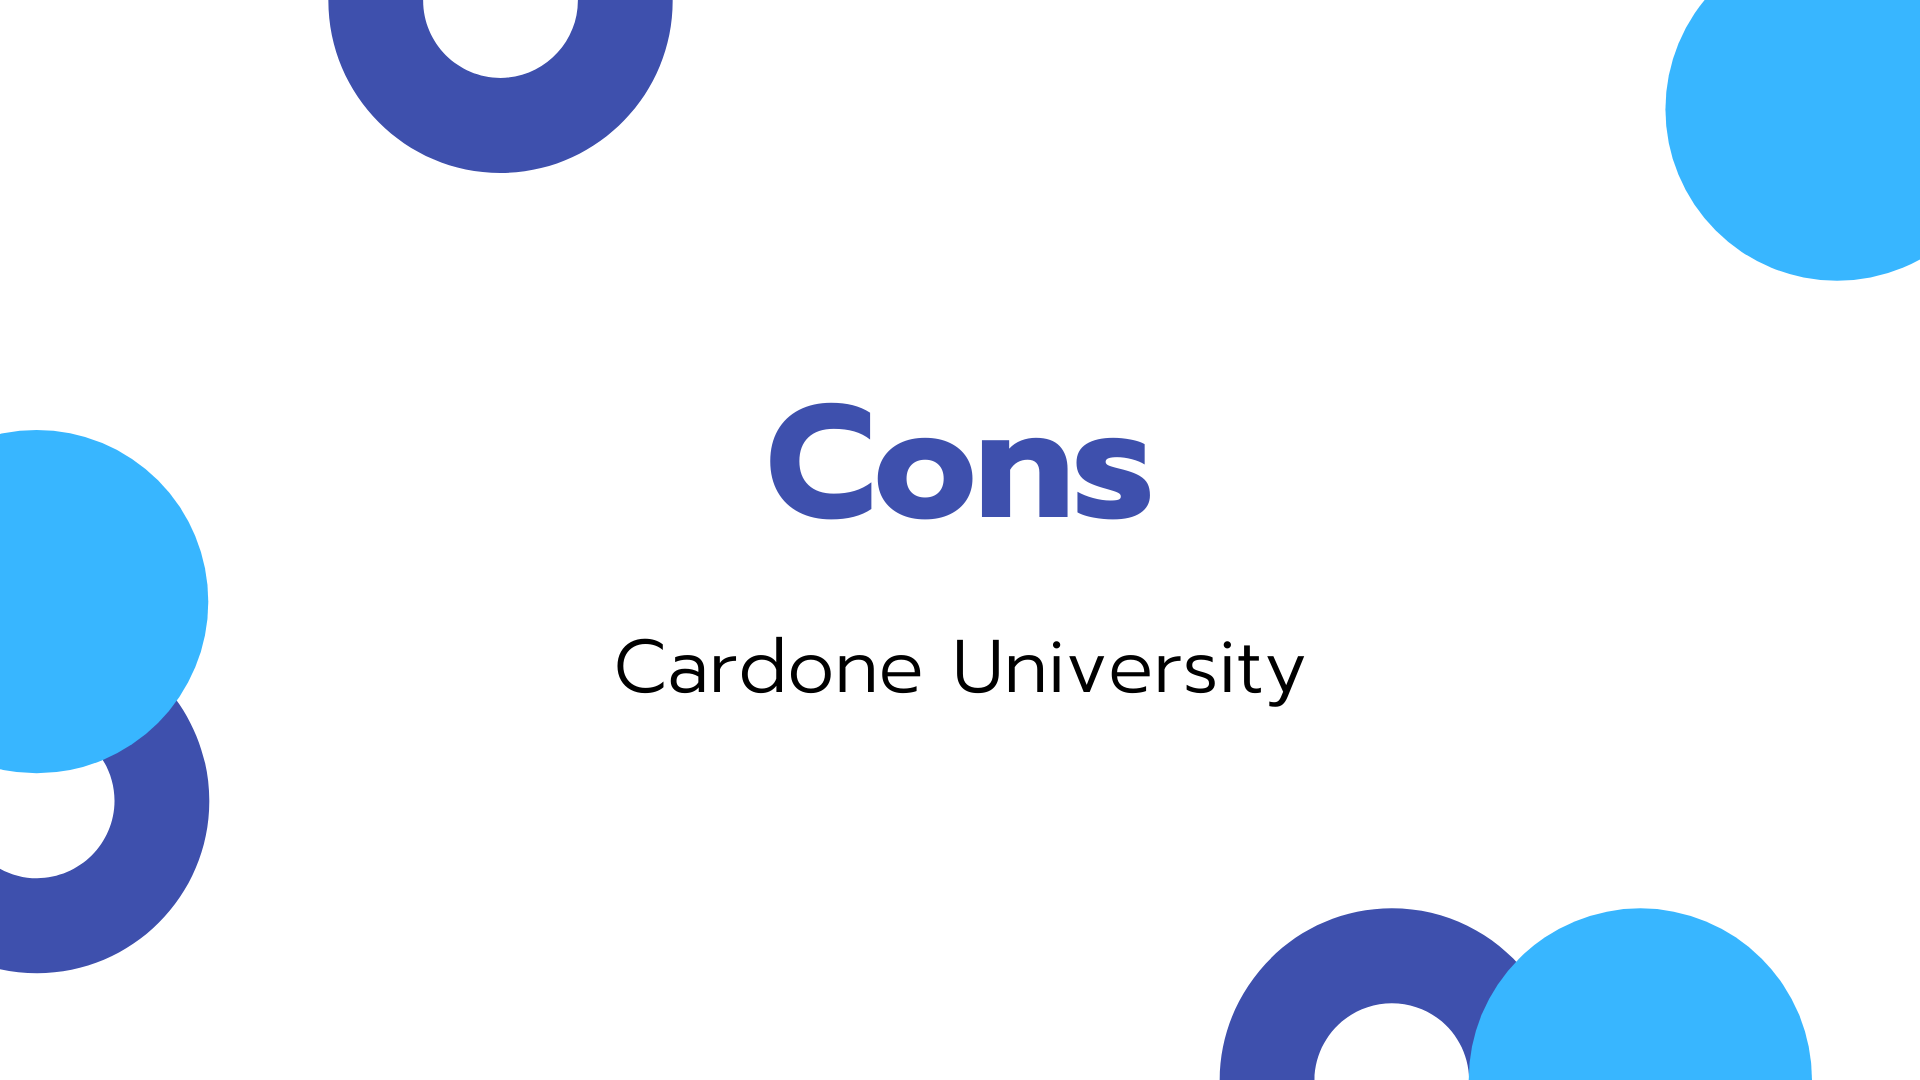 The cons of Cardone University